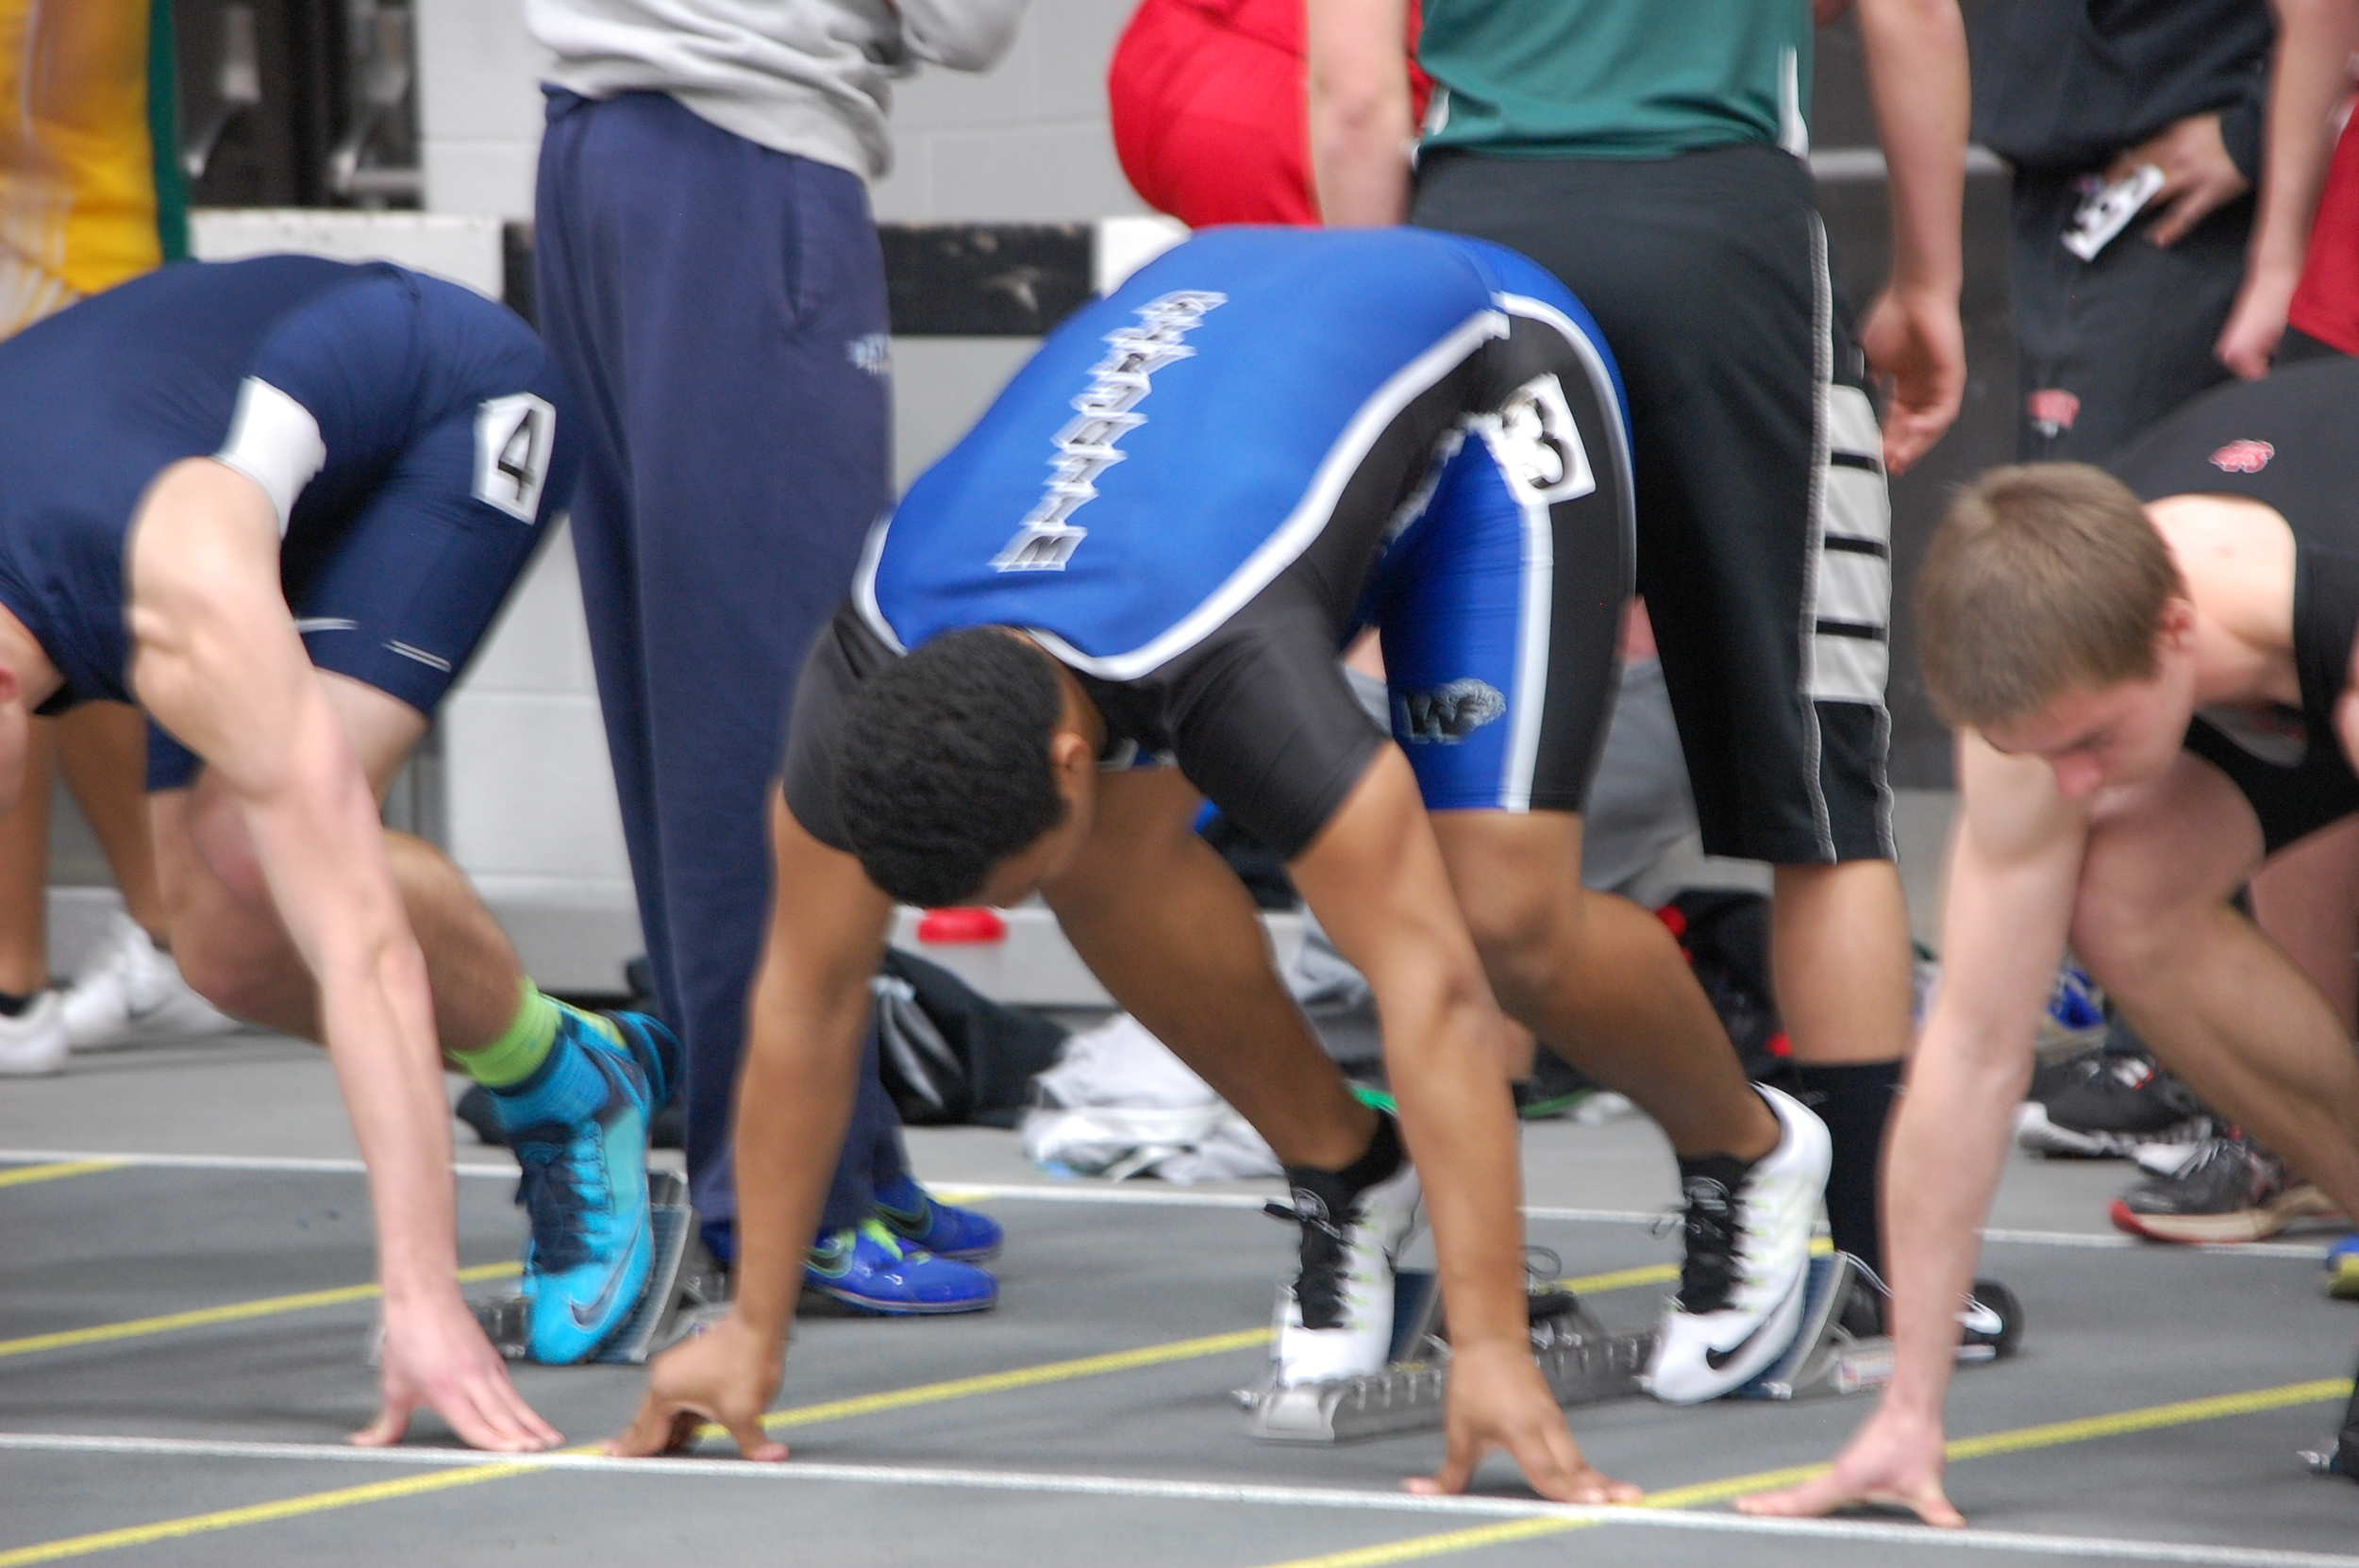 Junior Deshawn Dickinson gets into the ready position for the 60 meter hurdle trials.